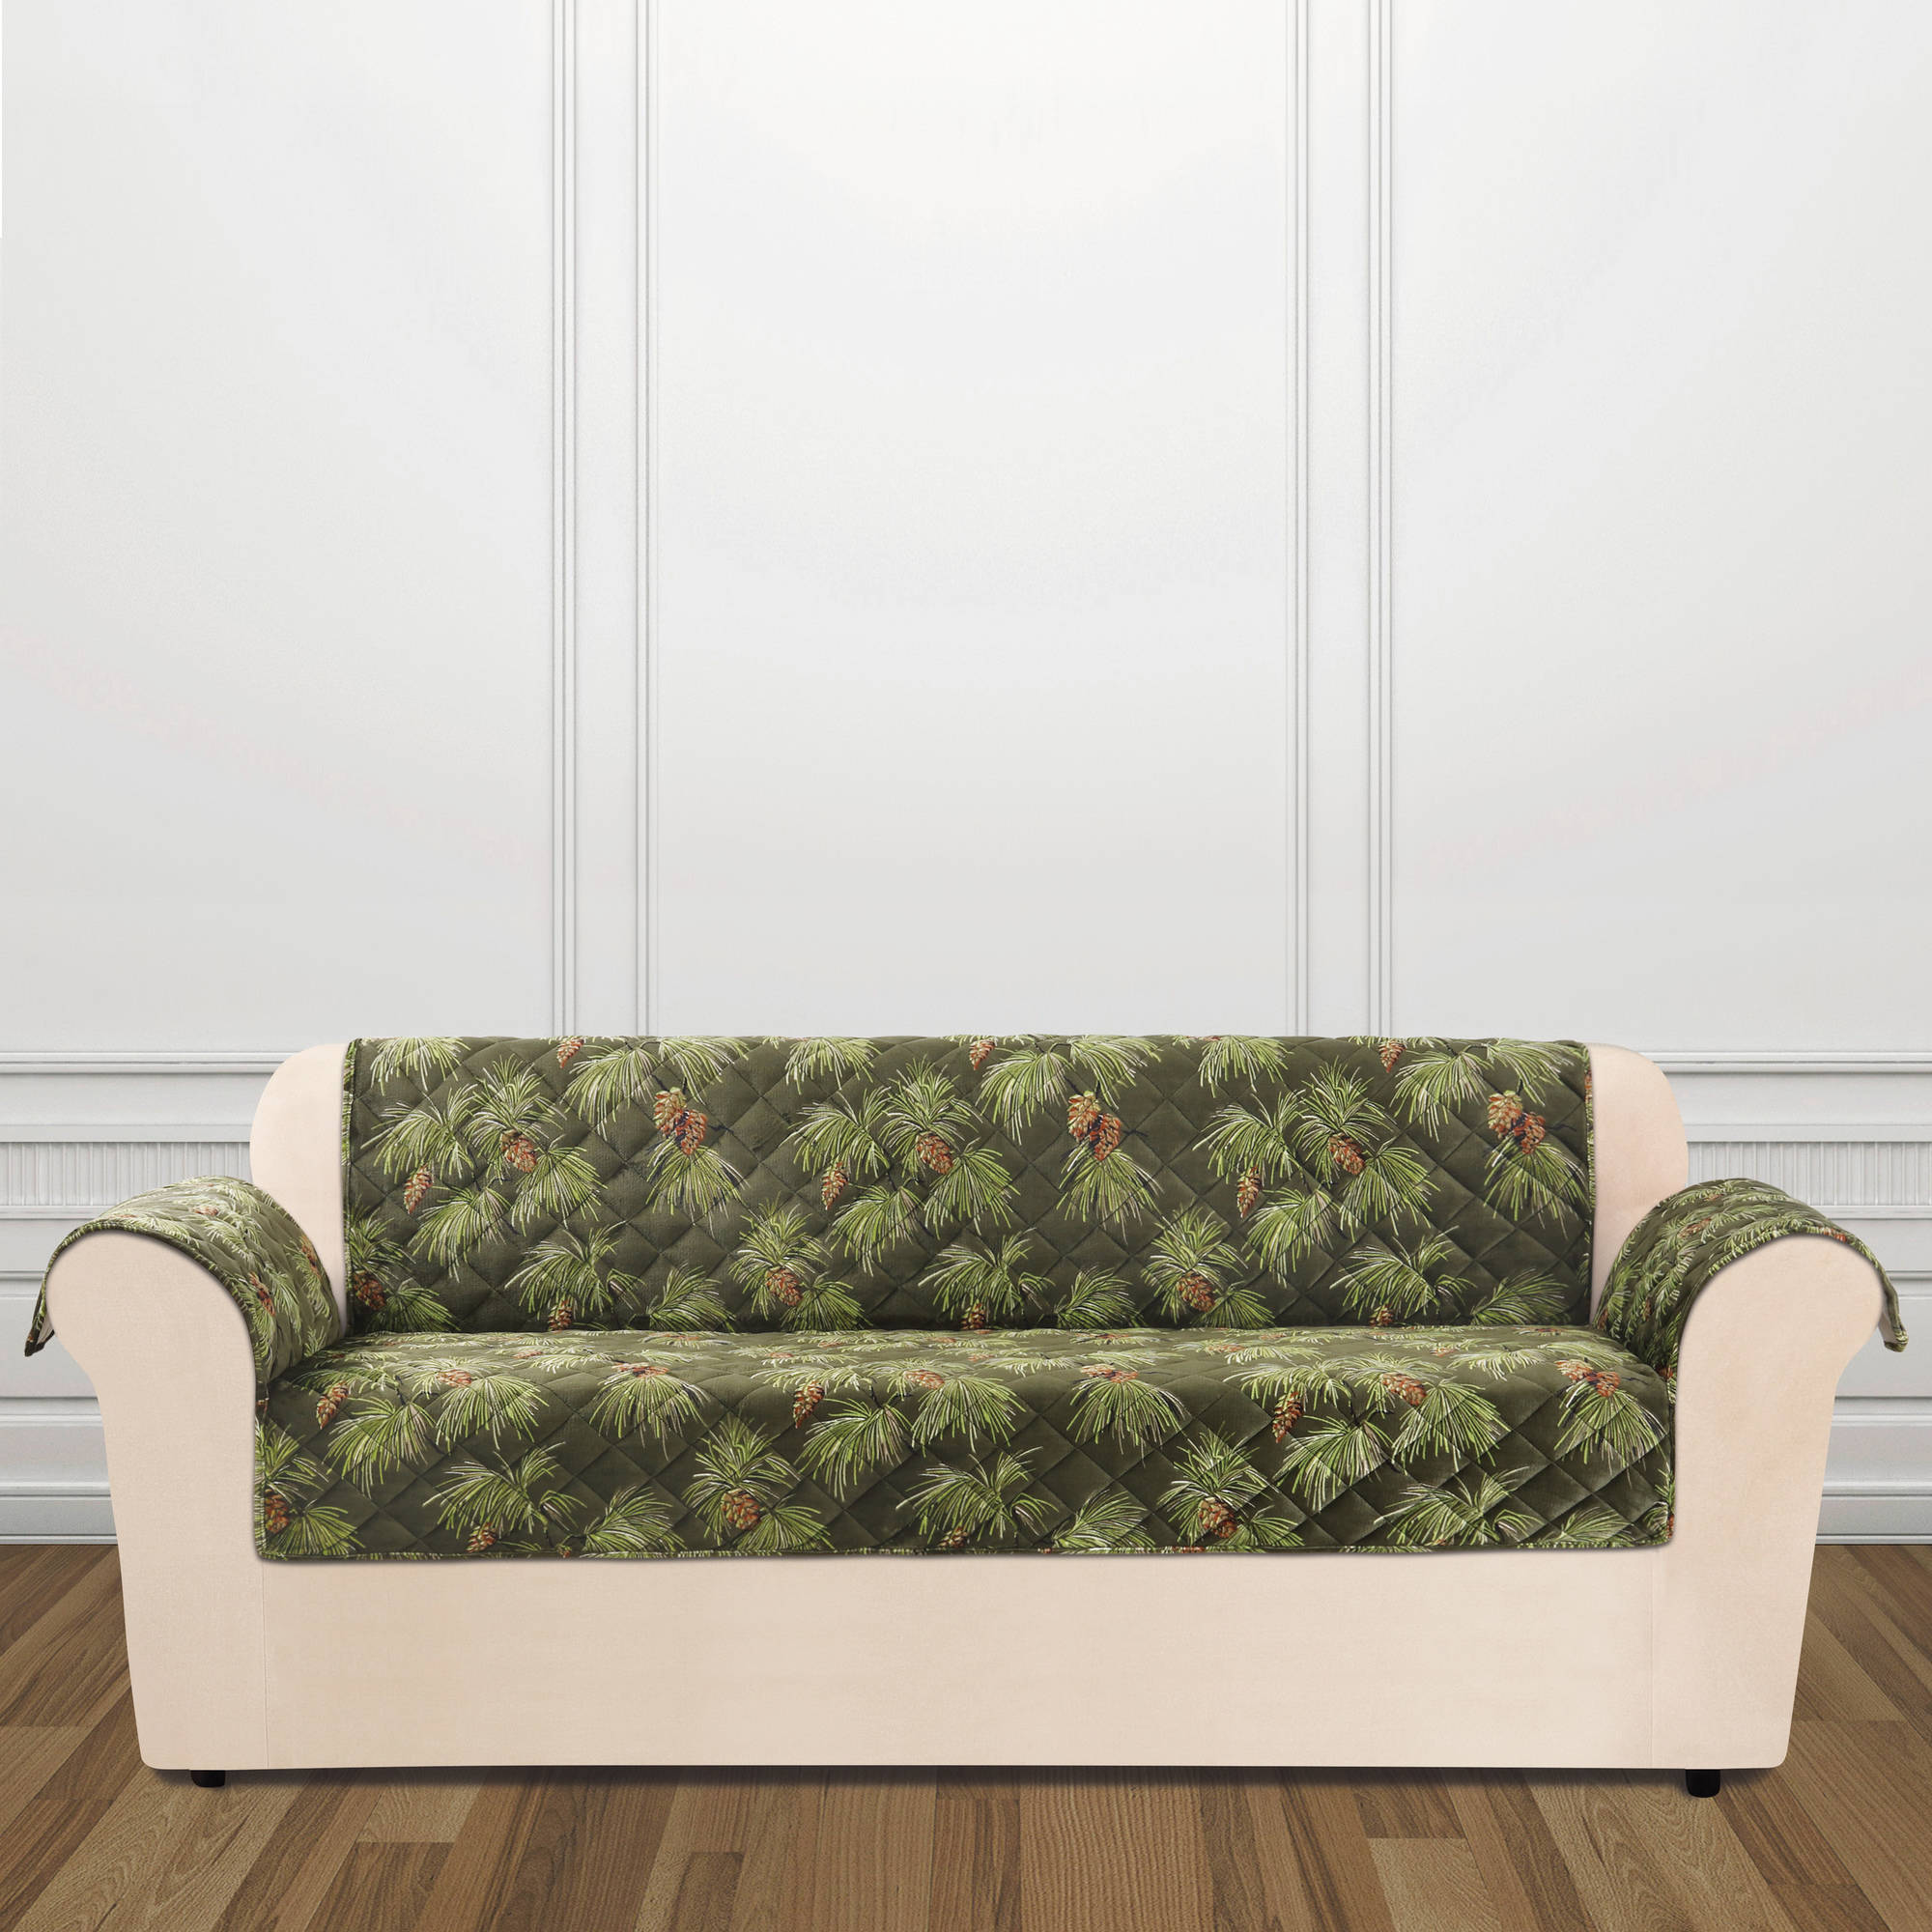 Sure Fit Holiday Furniture Sofa Slip Cover